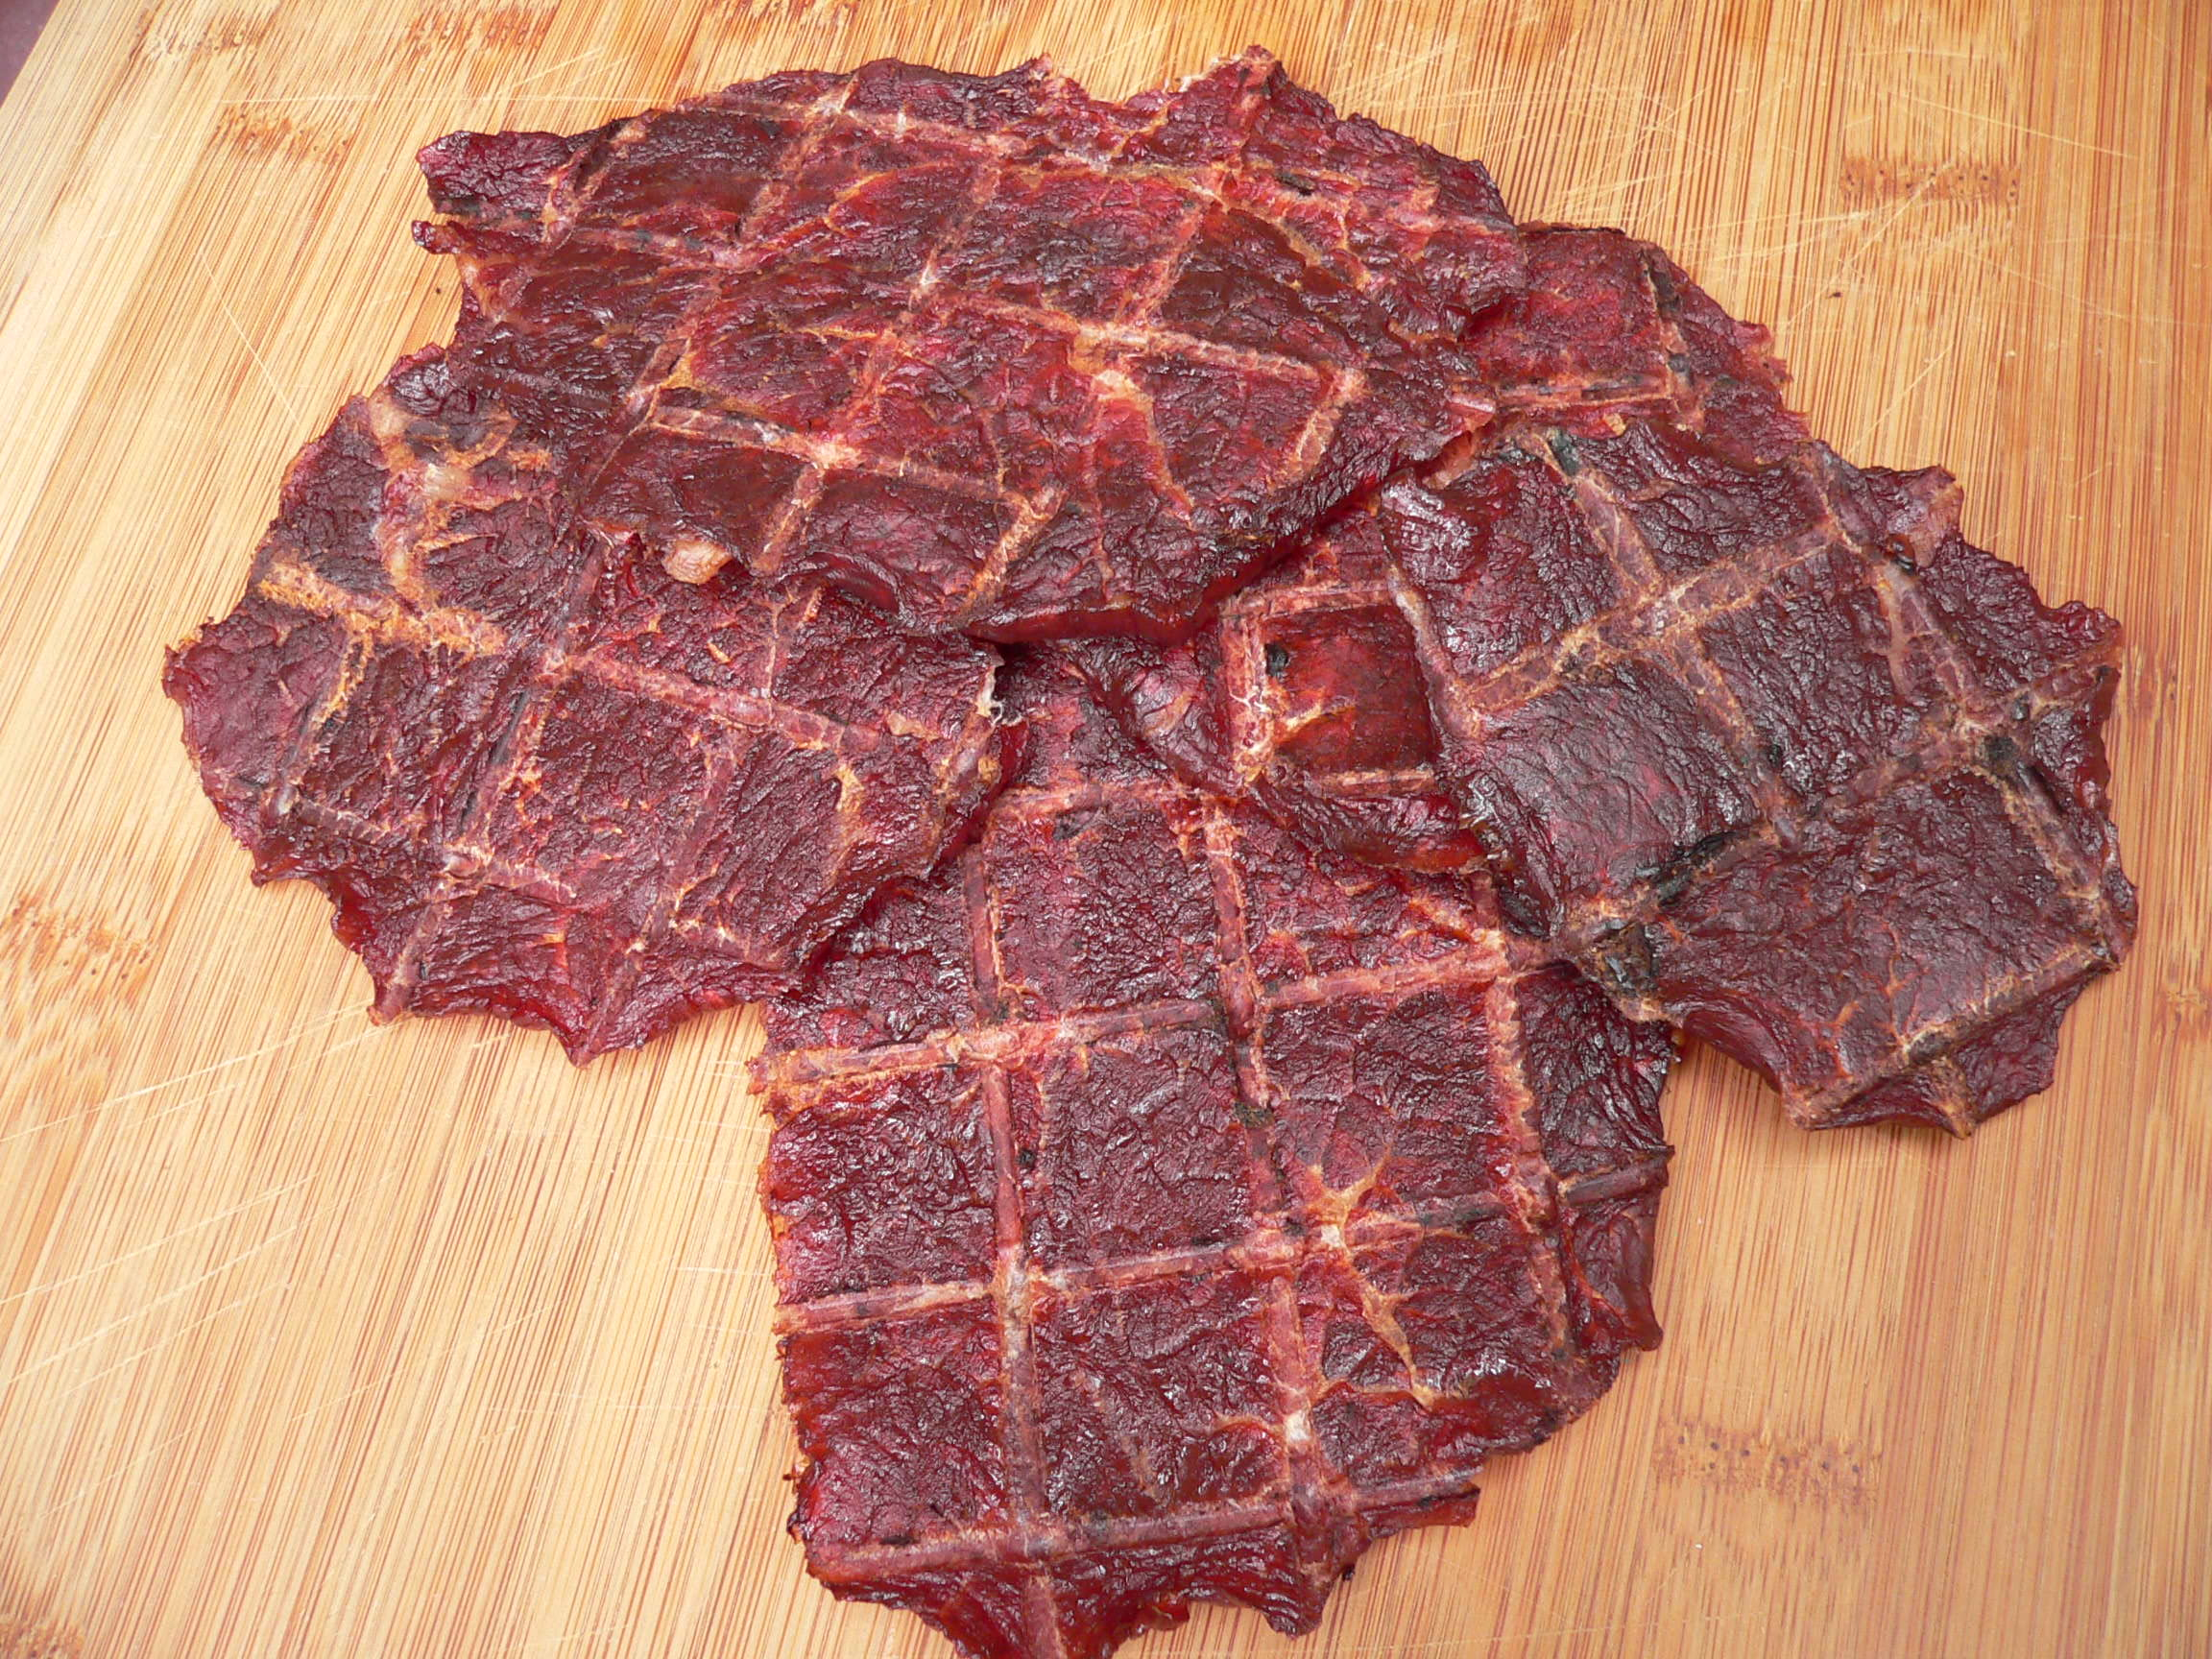 How to make beef jerky using electric smoker